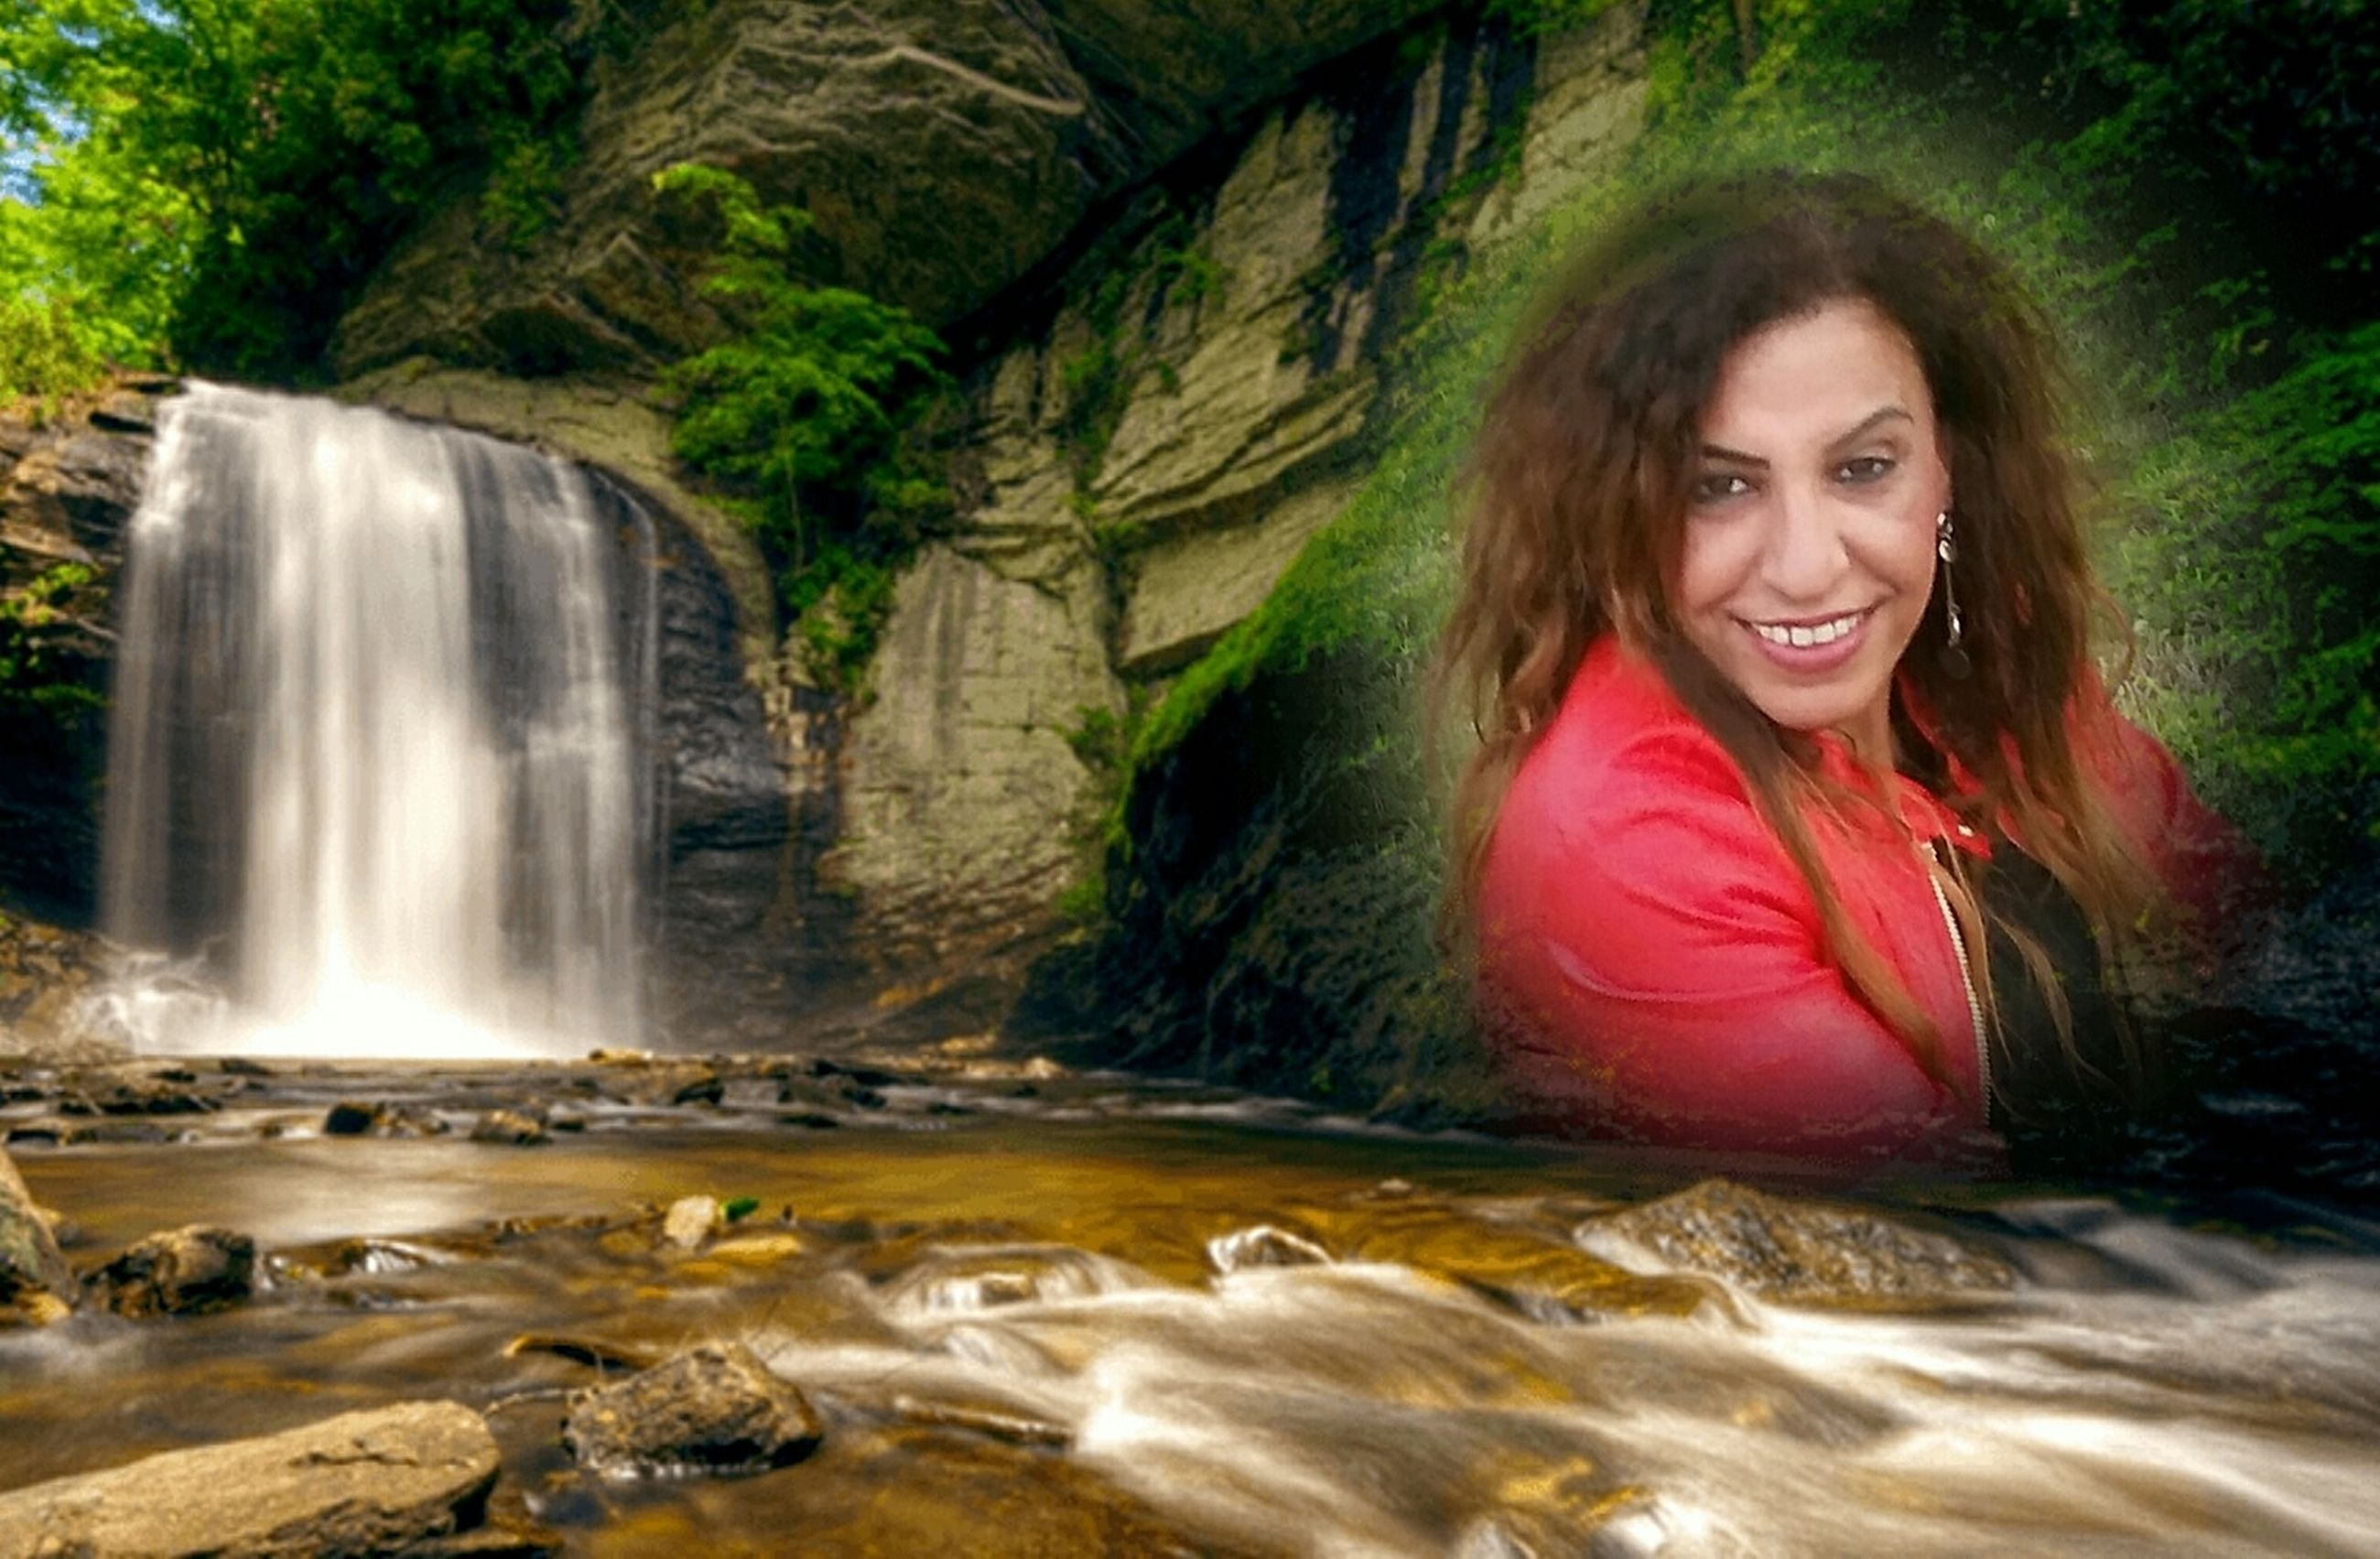 water, waterfall, smiling, rock - object, happiness, beauty, river, motion, beautiful woman, portrait, adults only, one person, one woman only, beauty in nature, nature, adult, young adult, adventure, people, only women, looking at camera, vacations, long exposure, outdoors, beautiful people, women, swimming, cheerful, day, one young woman only, young women, tree